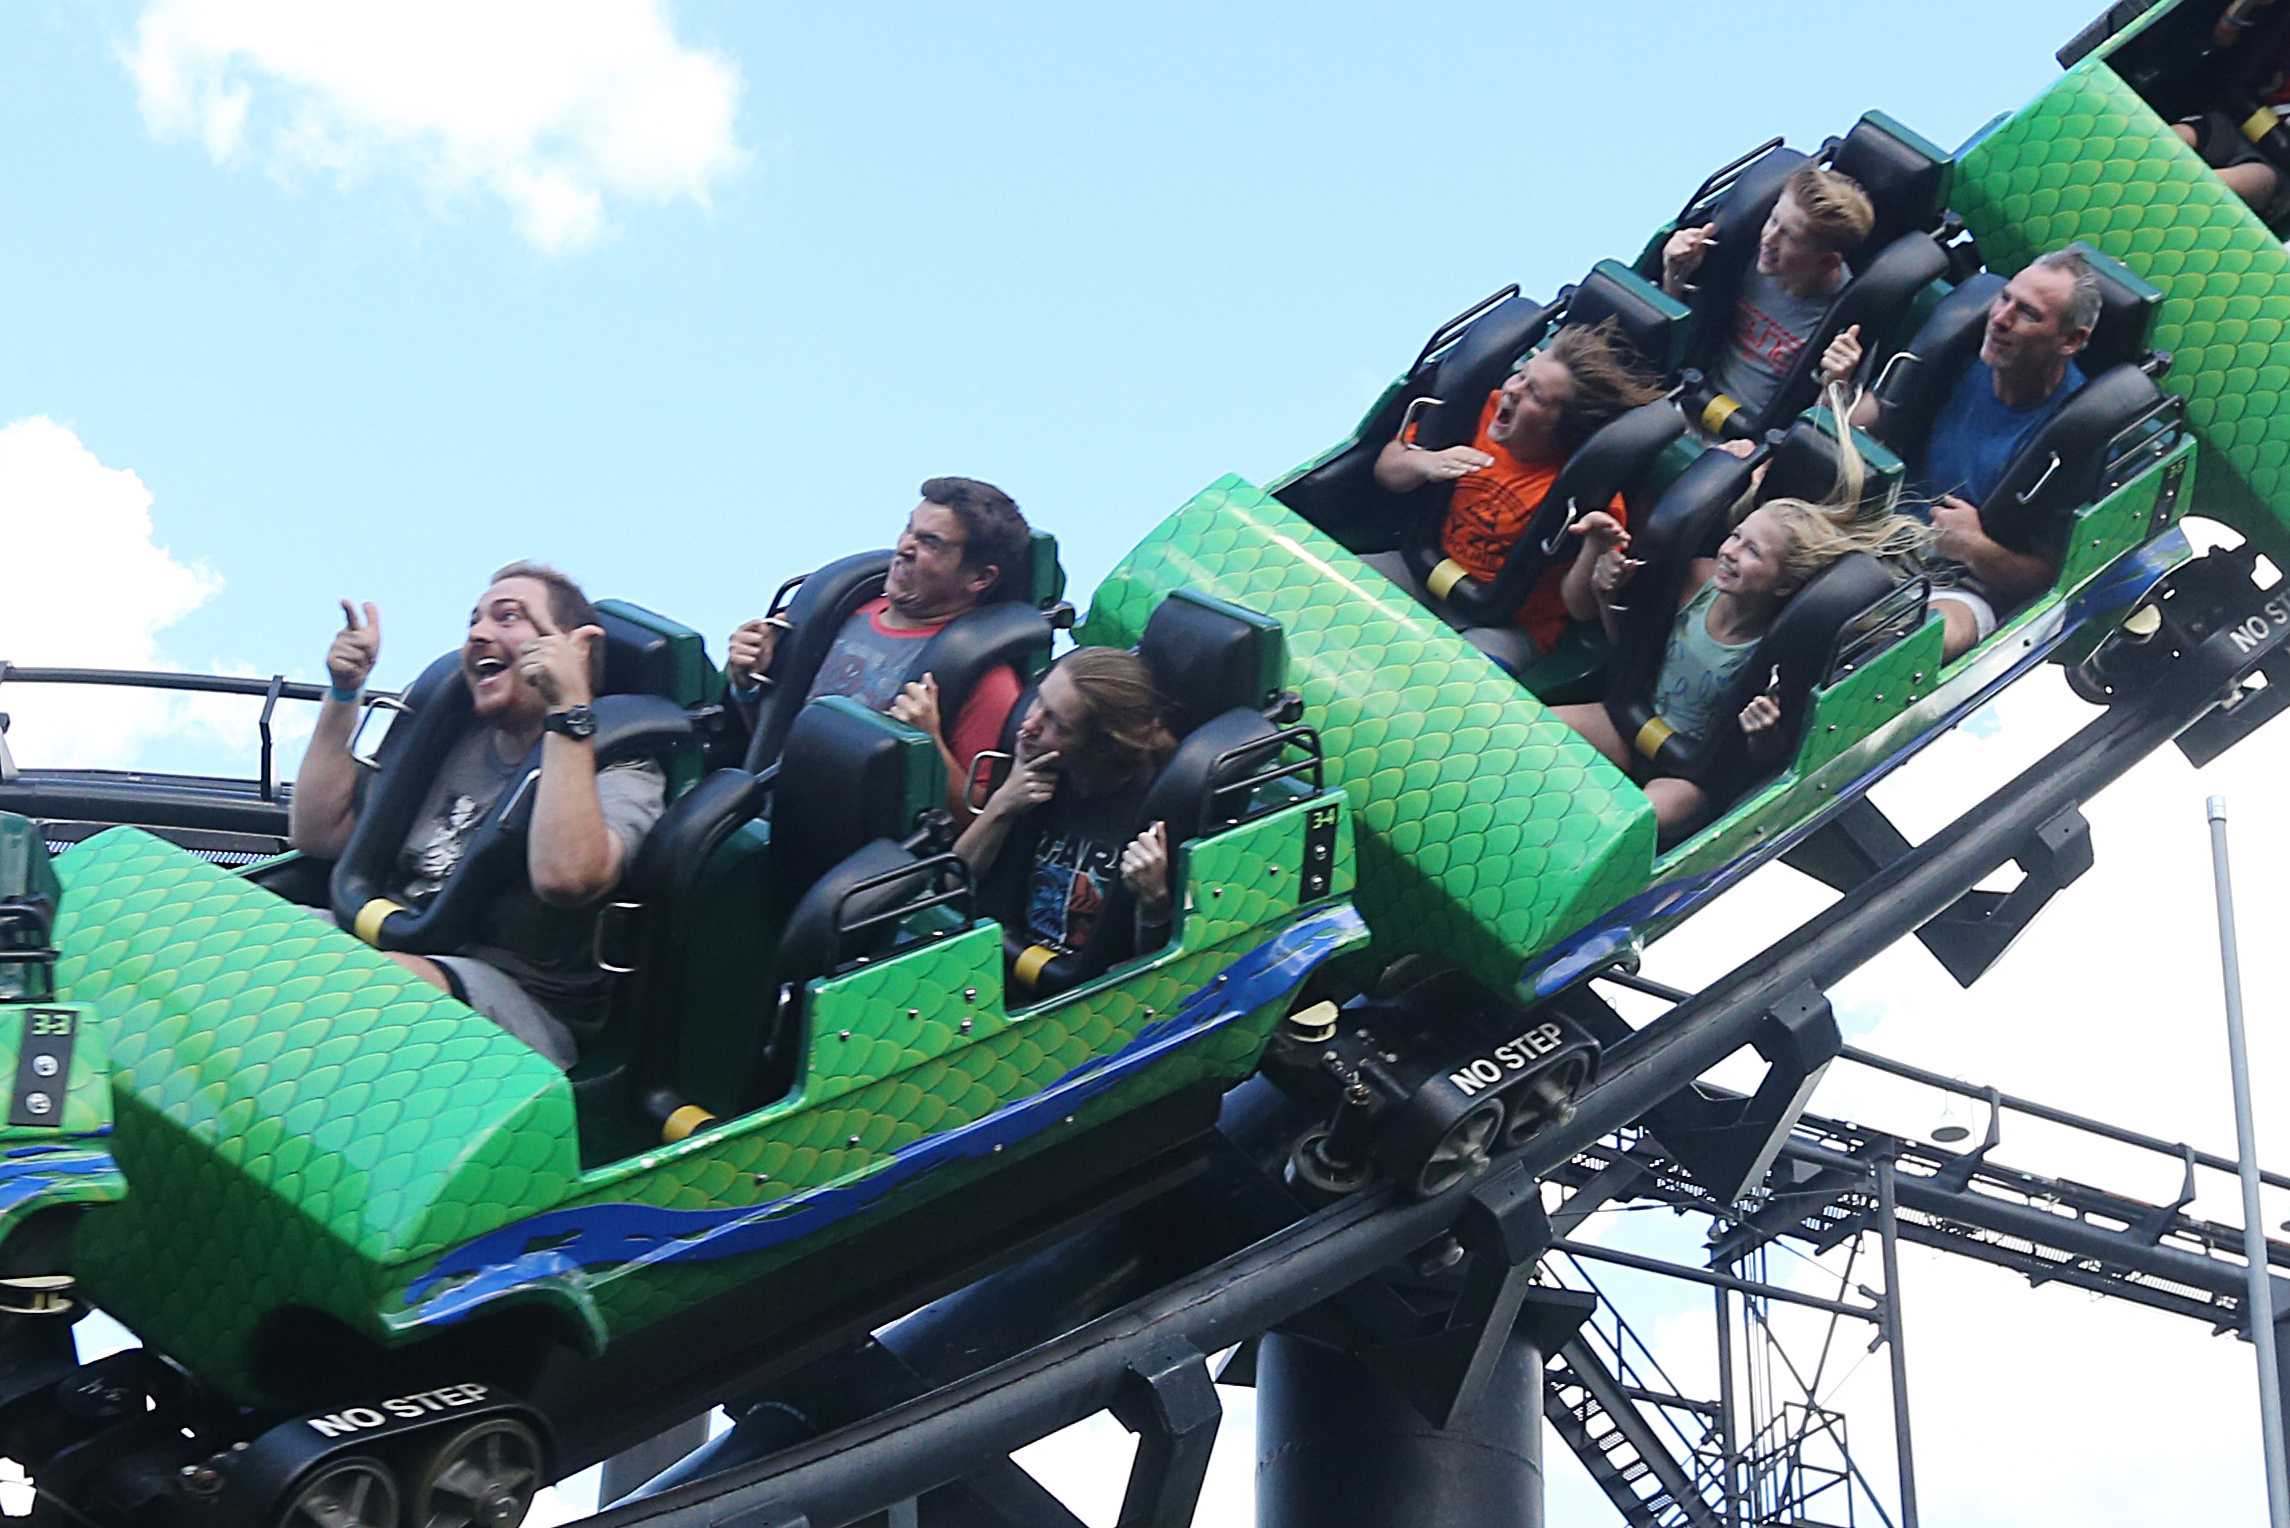 Riders enjoy the Viper at Darien Lake theme park. (Sharon Cantillon/News file photo)